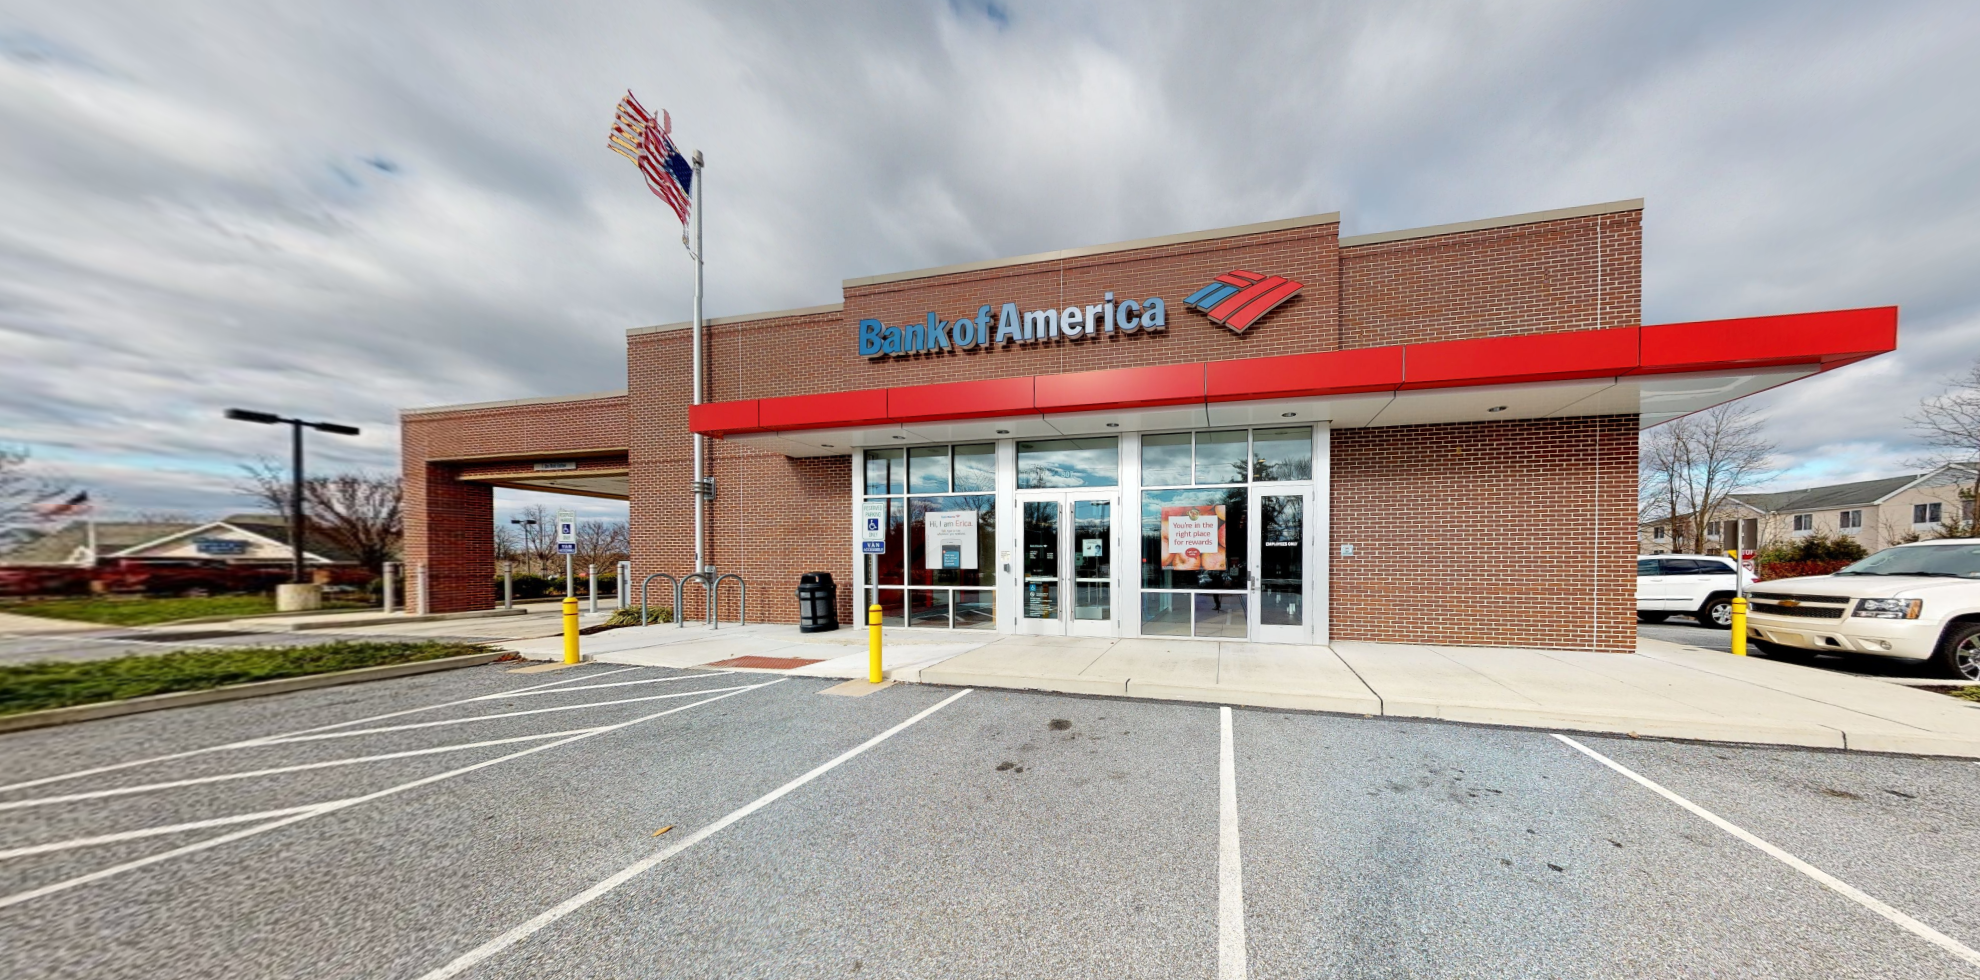 Bank of America financial center with drive-thru ATM   807 E Baltimore Pike, Kennett Square, PA 19348